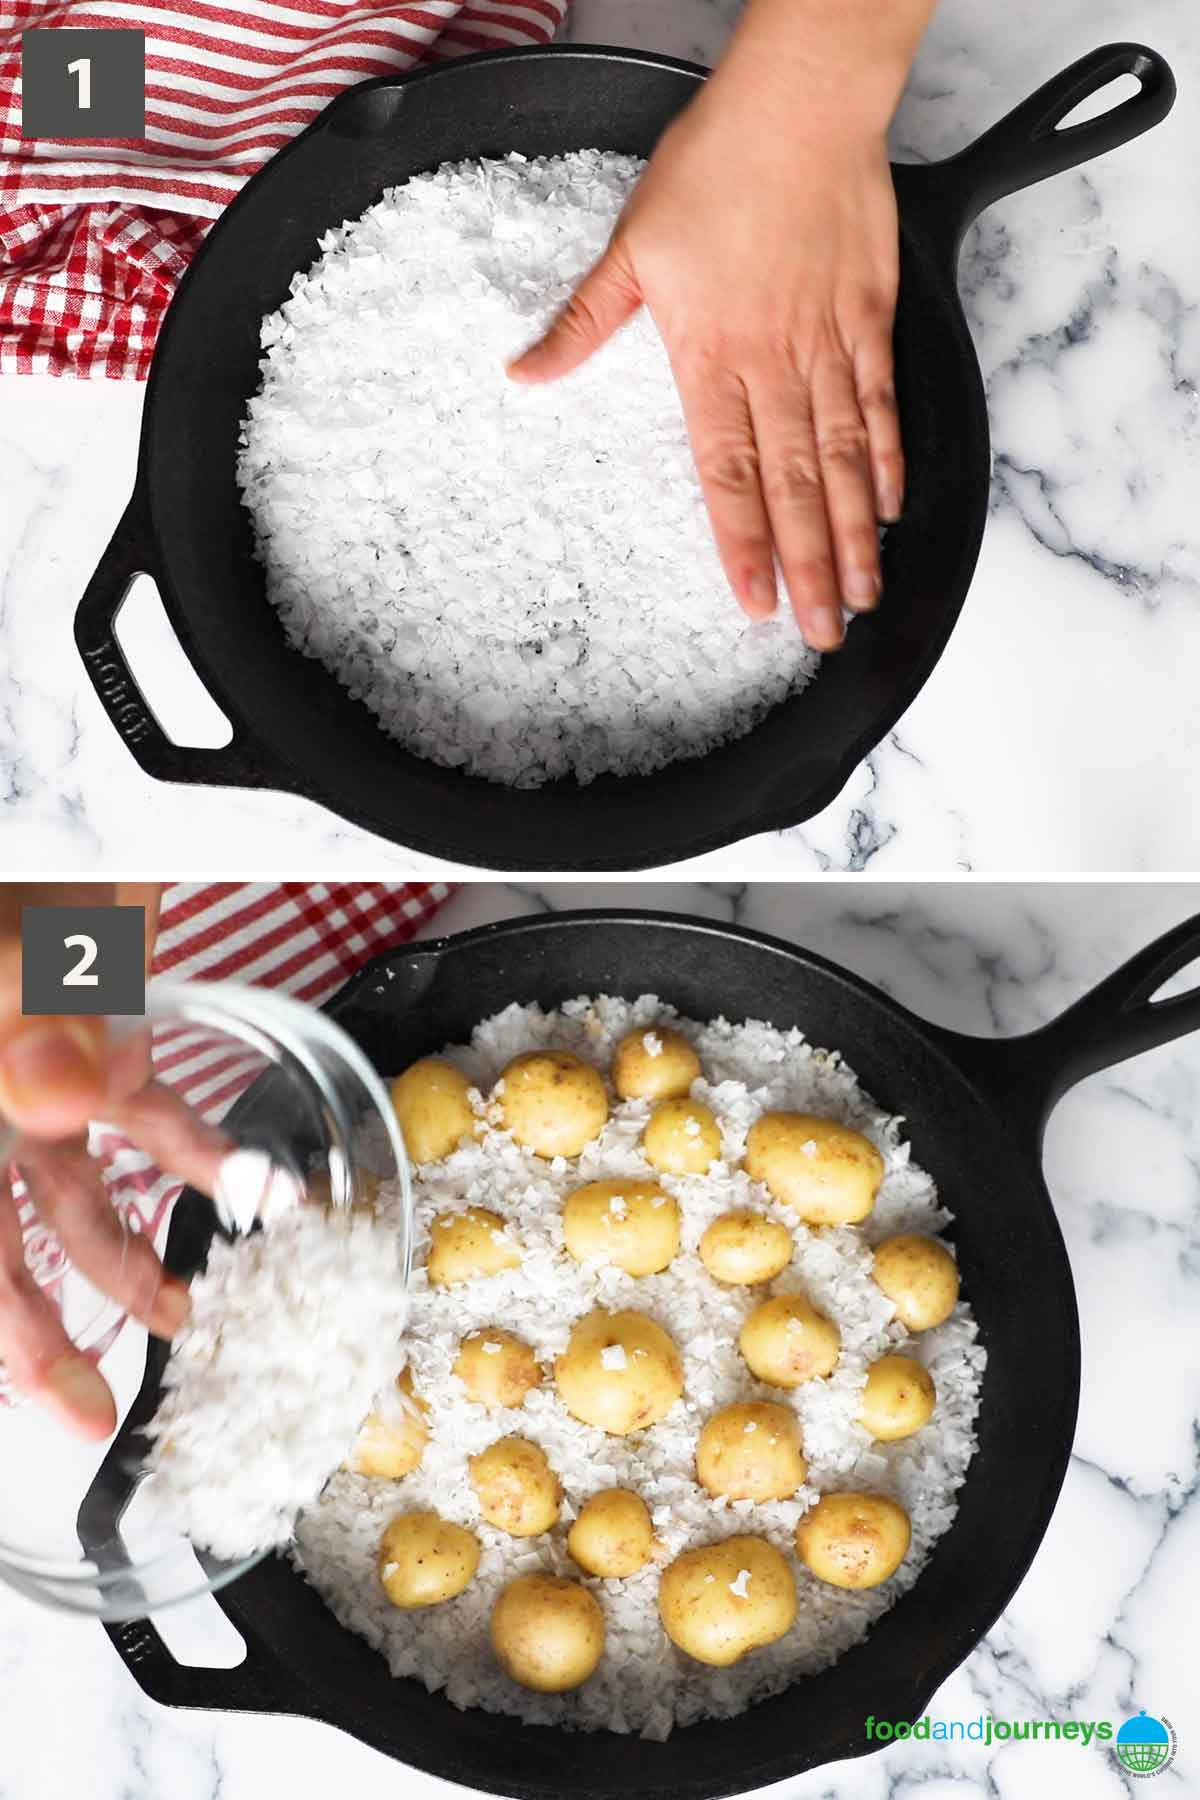 An updated collage of images showing the step by step process on how to make salt-crusted baked potatoes